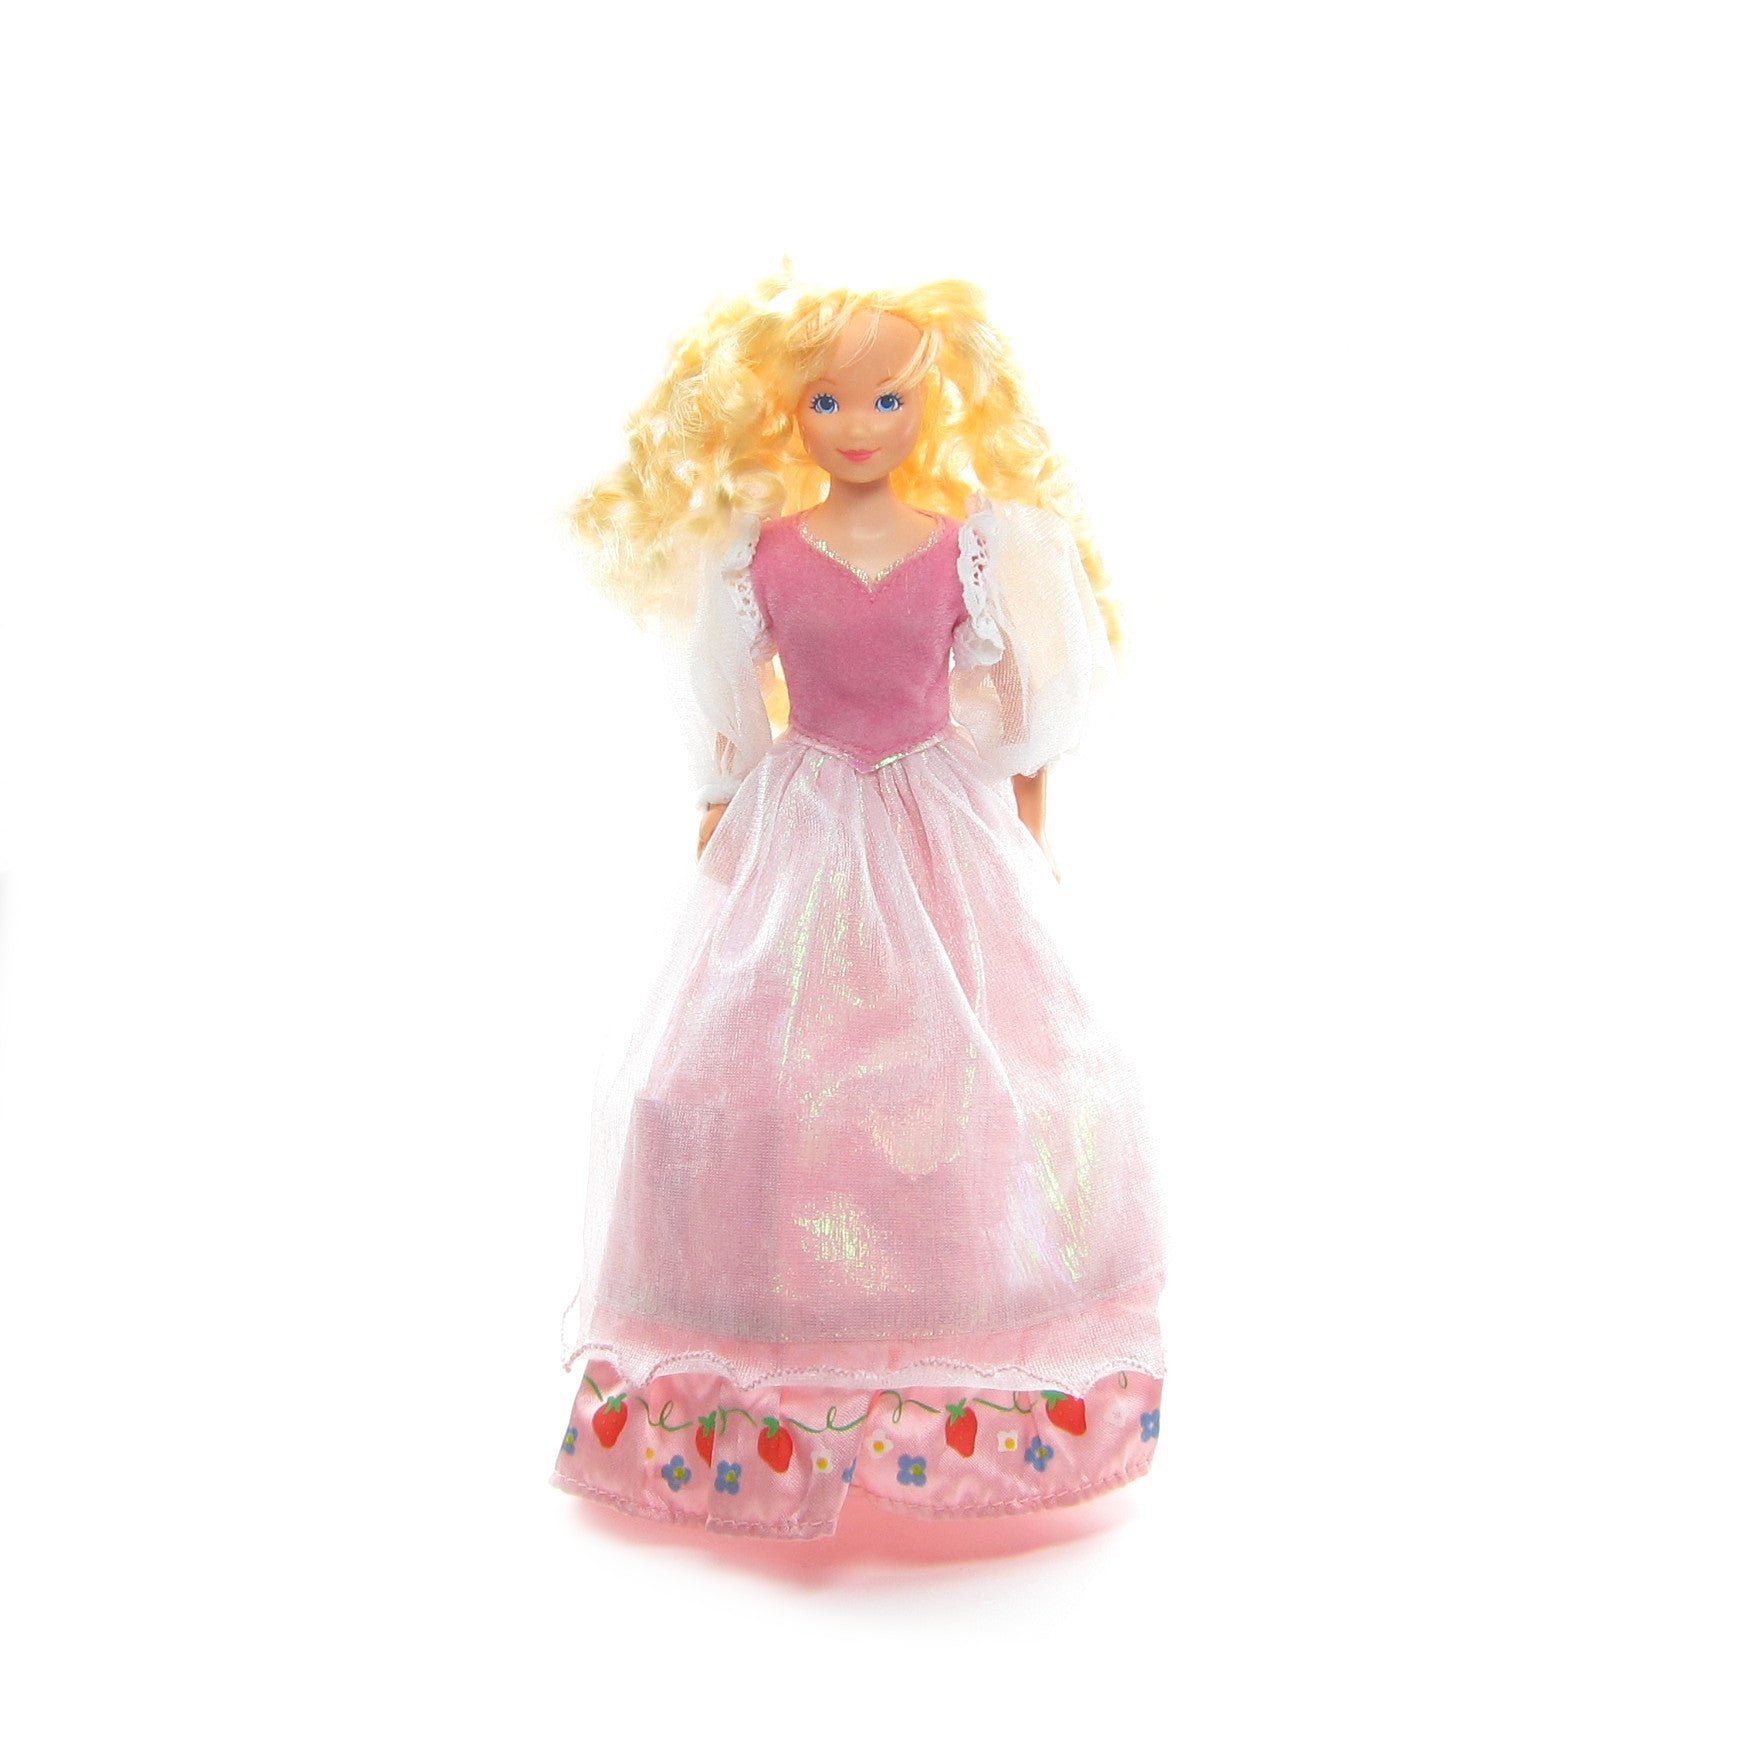 Berrykin Berry Princess Strawberry Shortcake doll